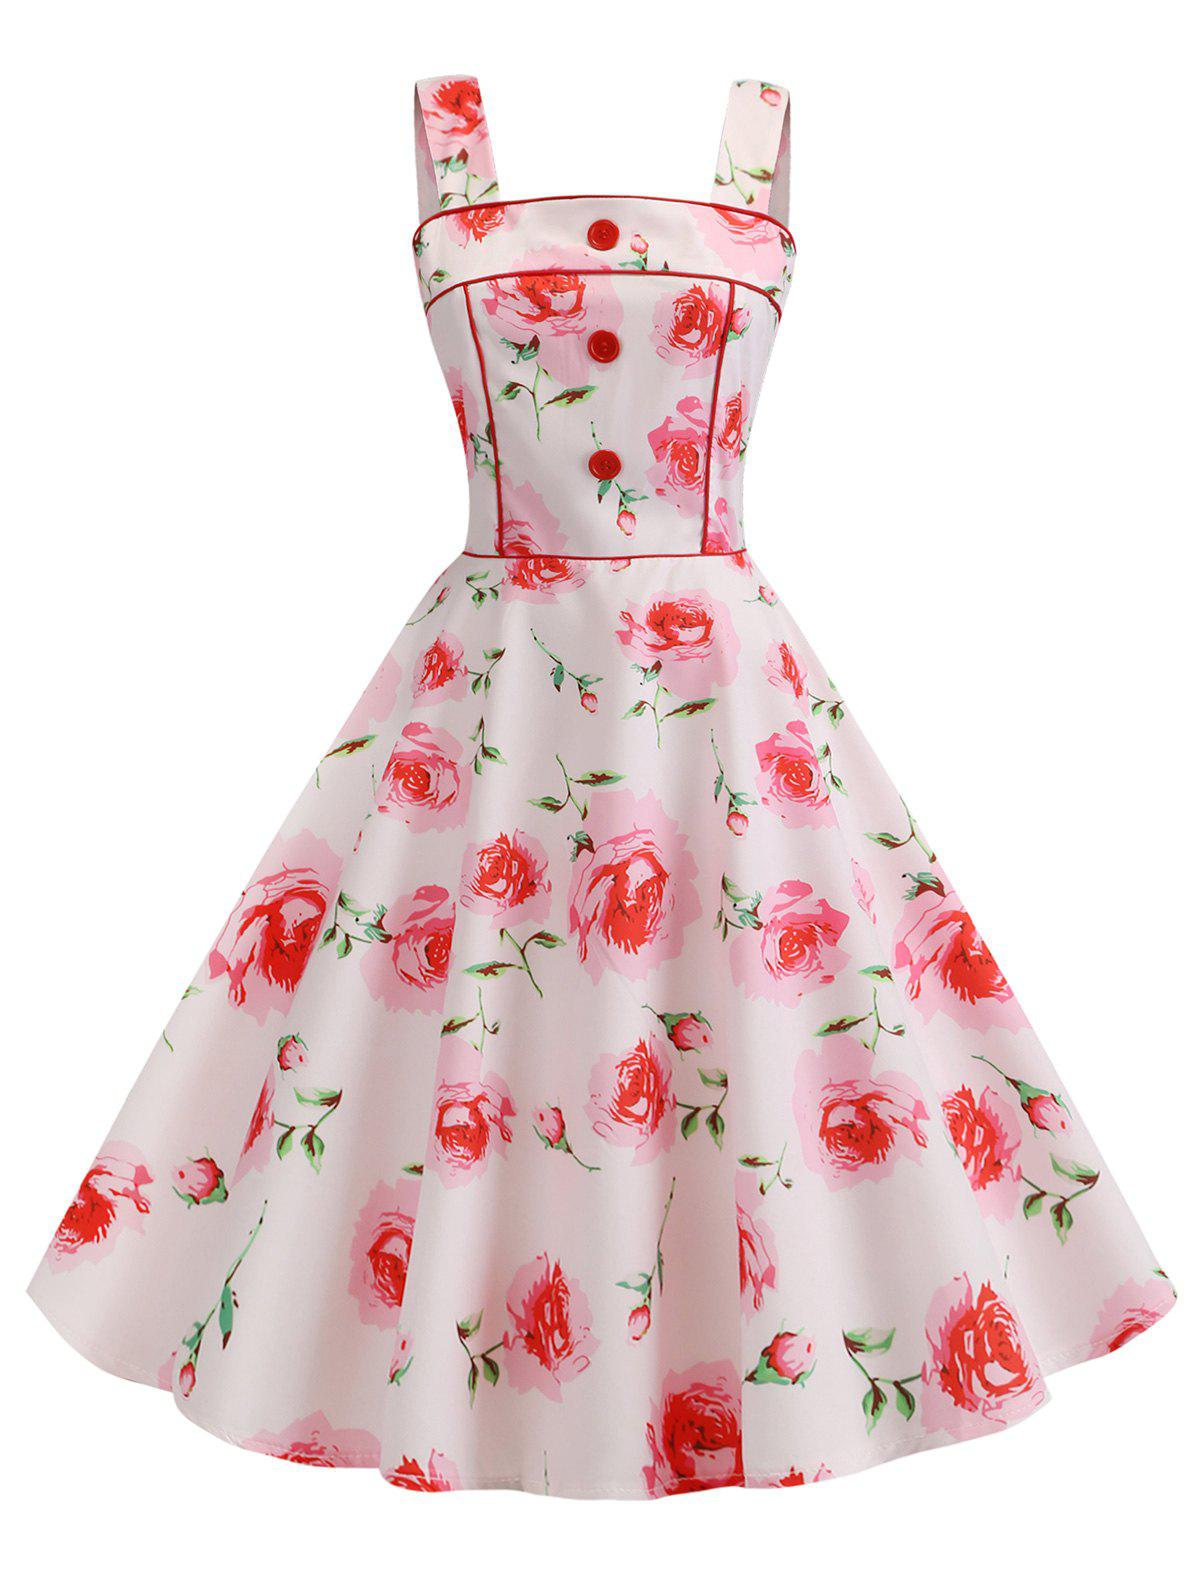 Best Floral Square Neck Button Embellished Dress